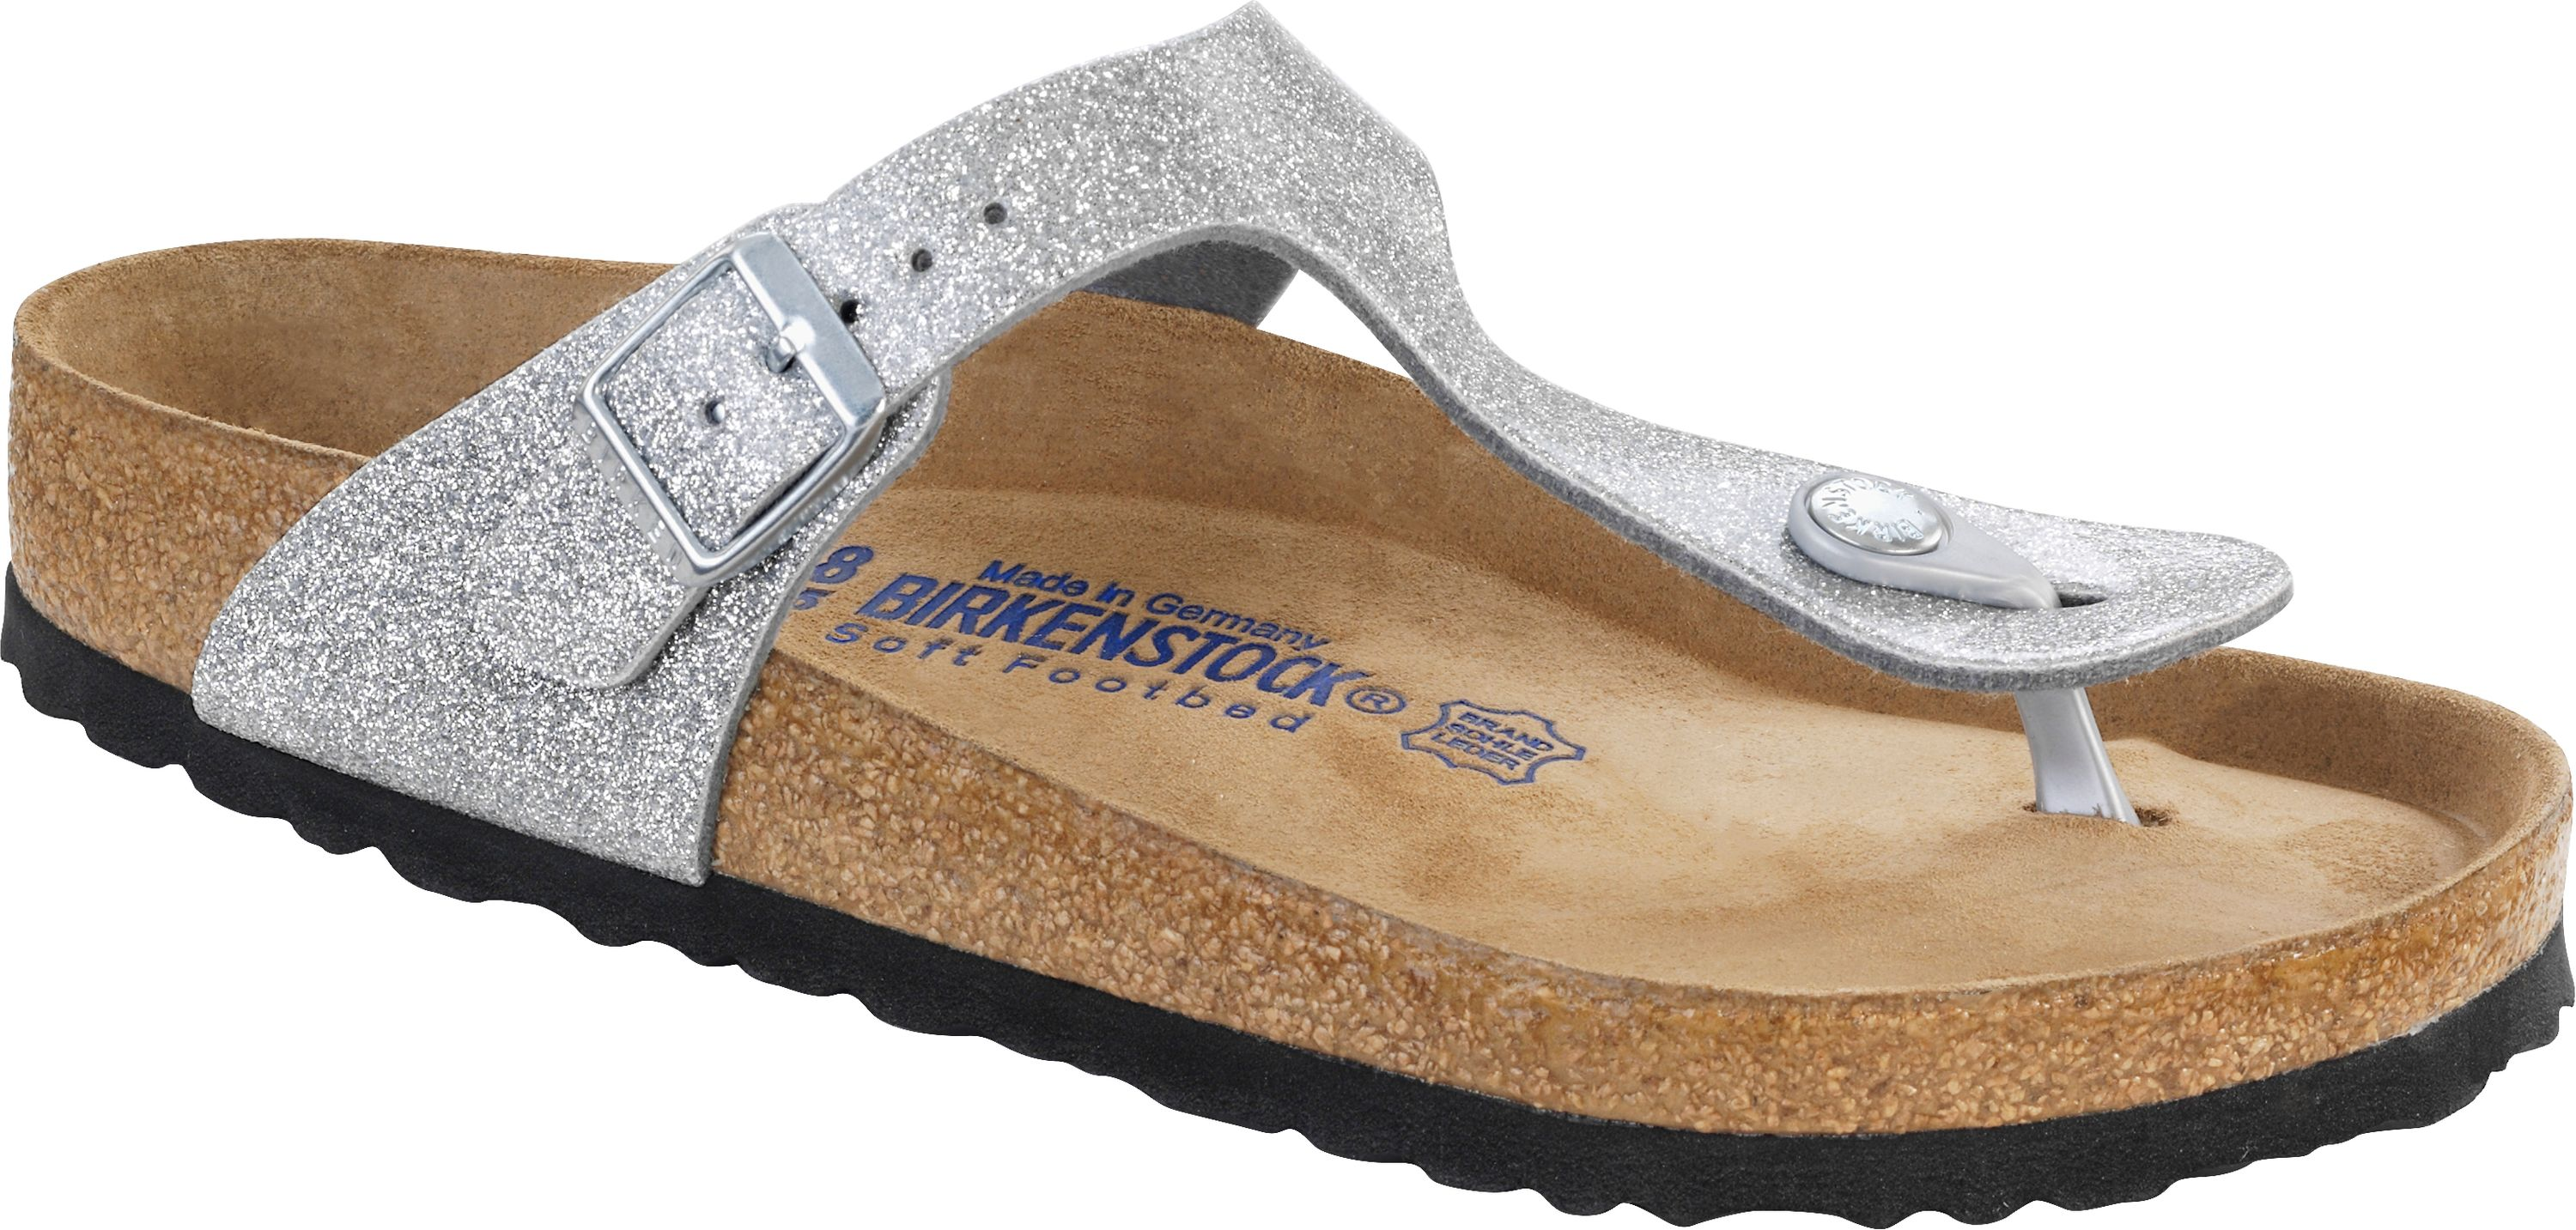 Birkenstock Zehensteg Sandale Gizeh BF WB Magic Galaxy Silver Gr. 35 43 847461 + 847463